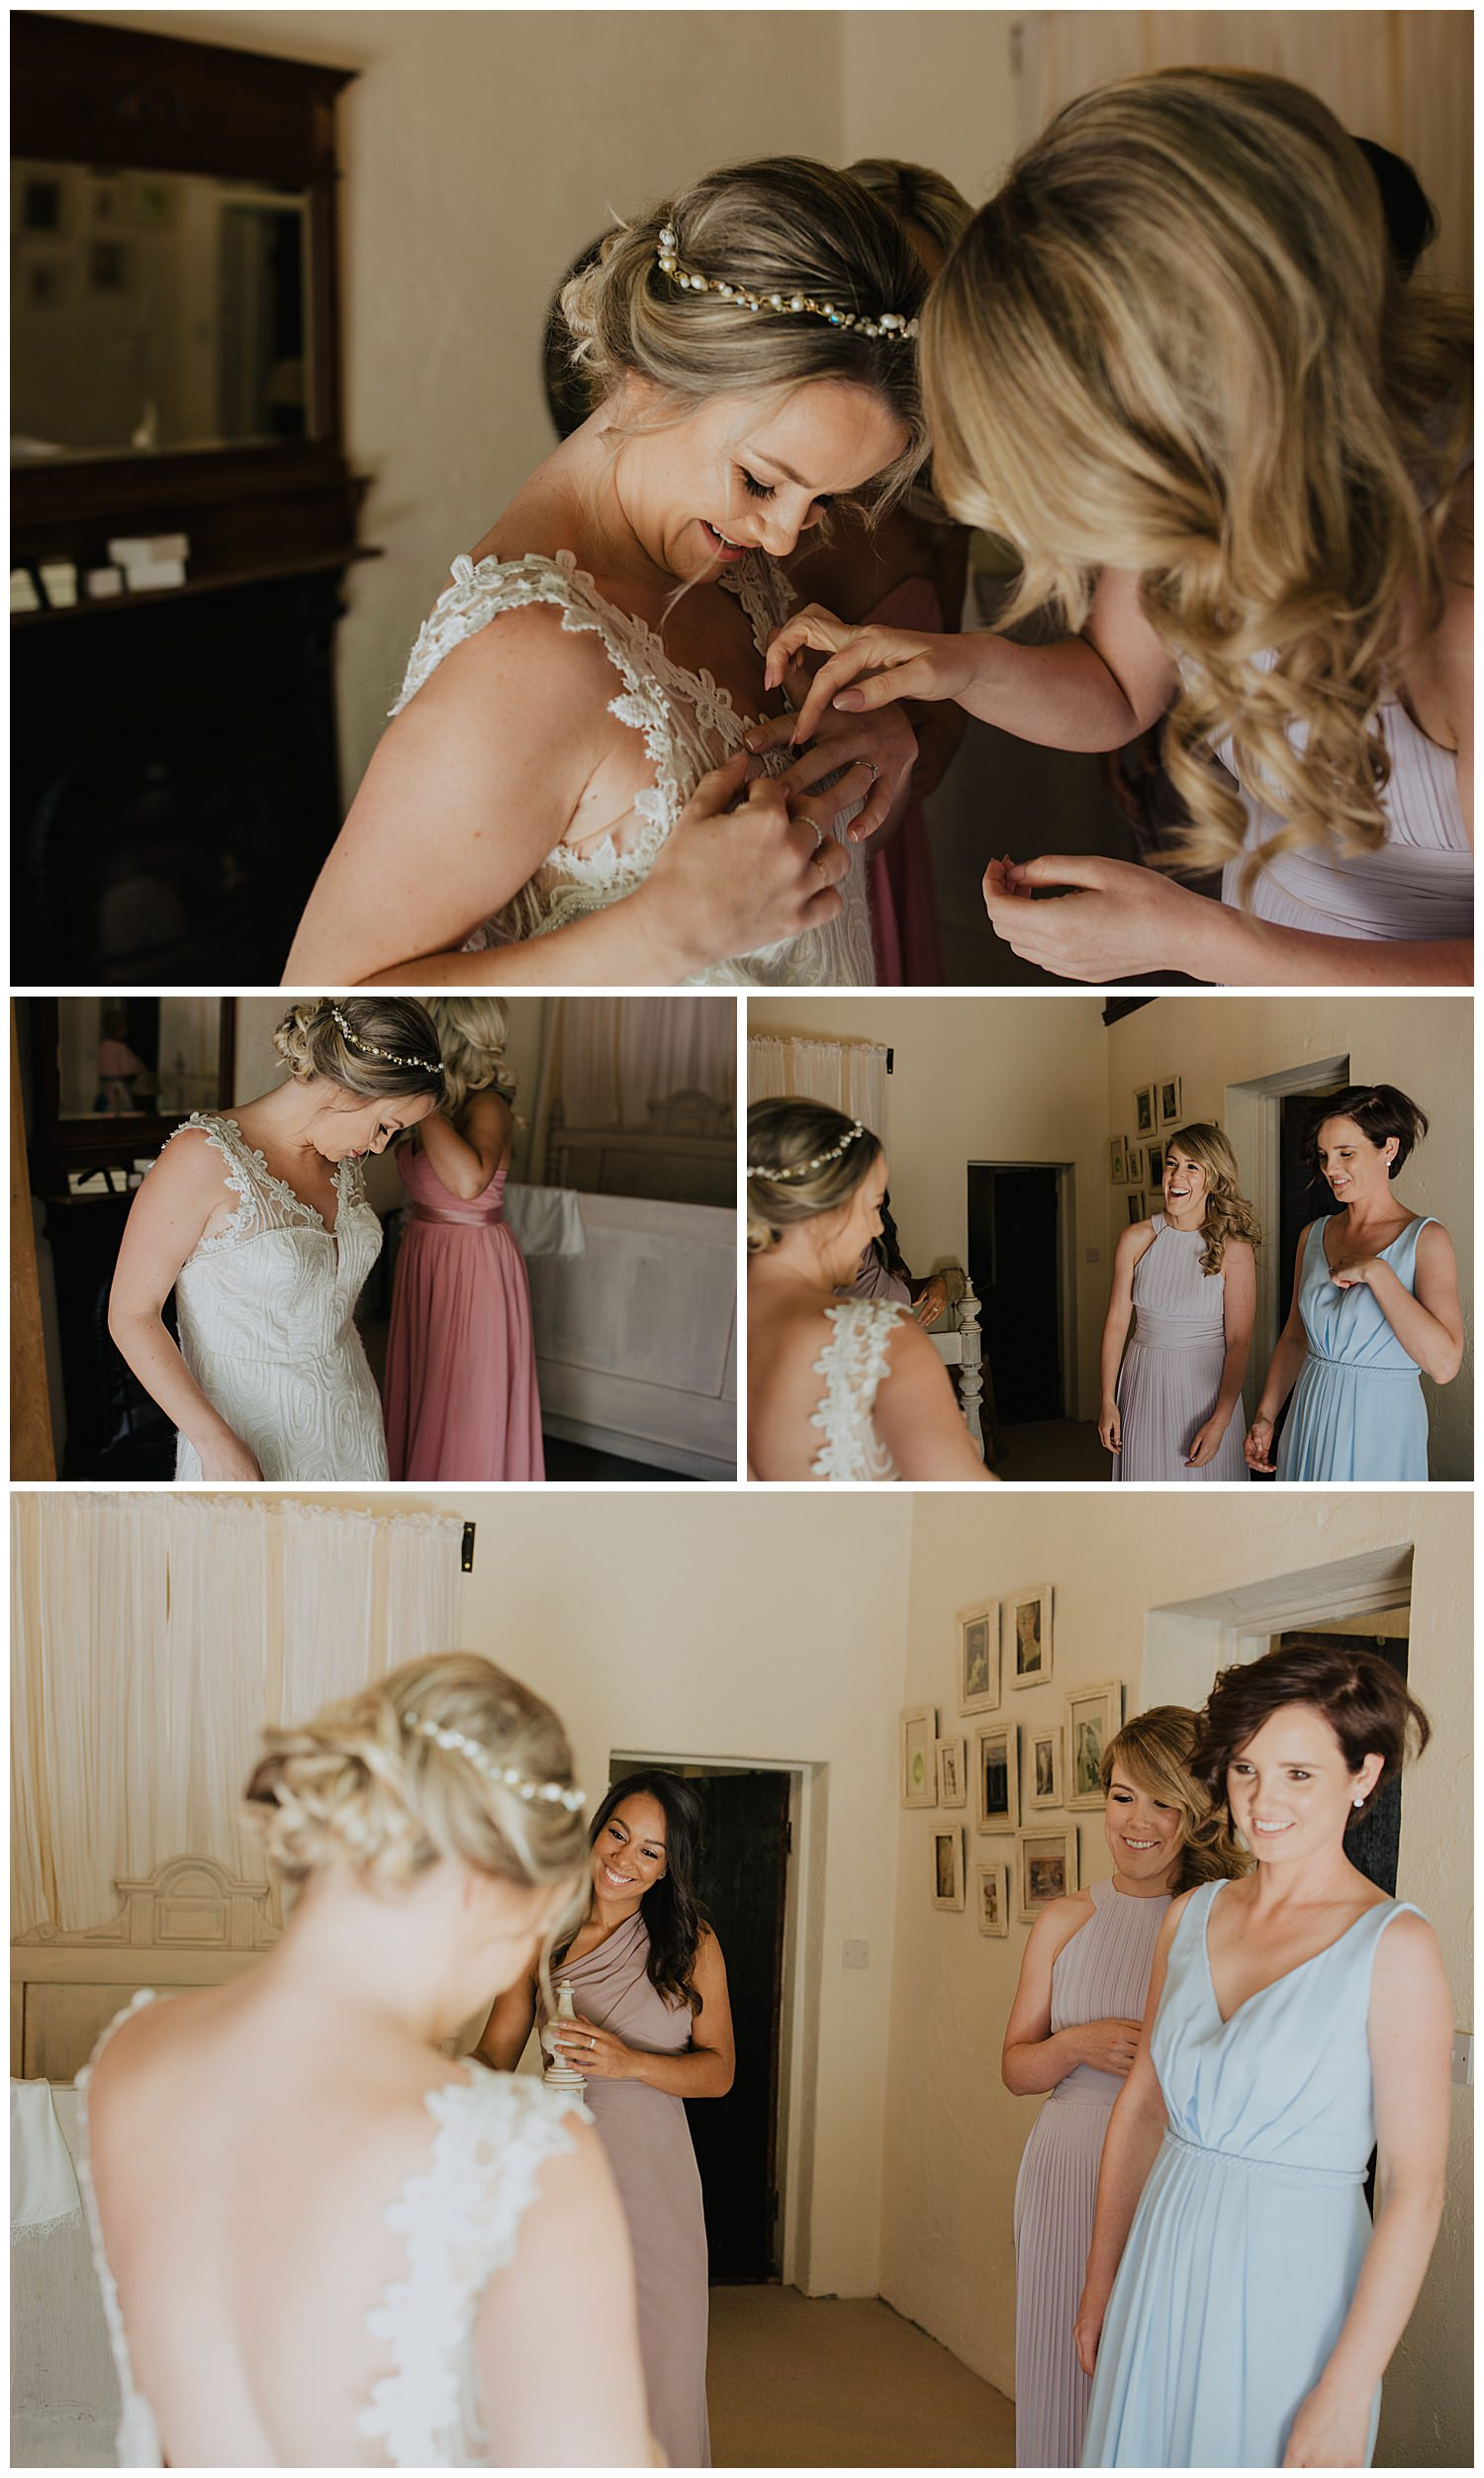 j&r_ballybeg_house_wedding_photographer_livia_figueiredo_149.jpg